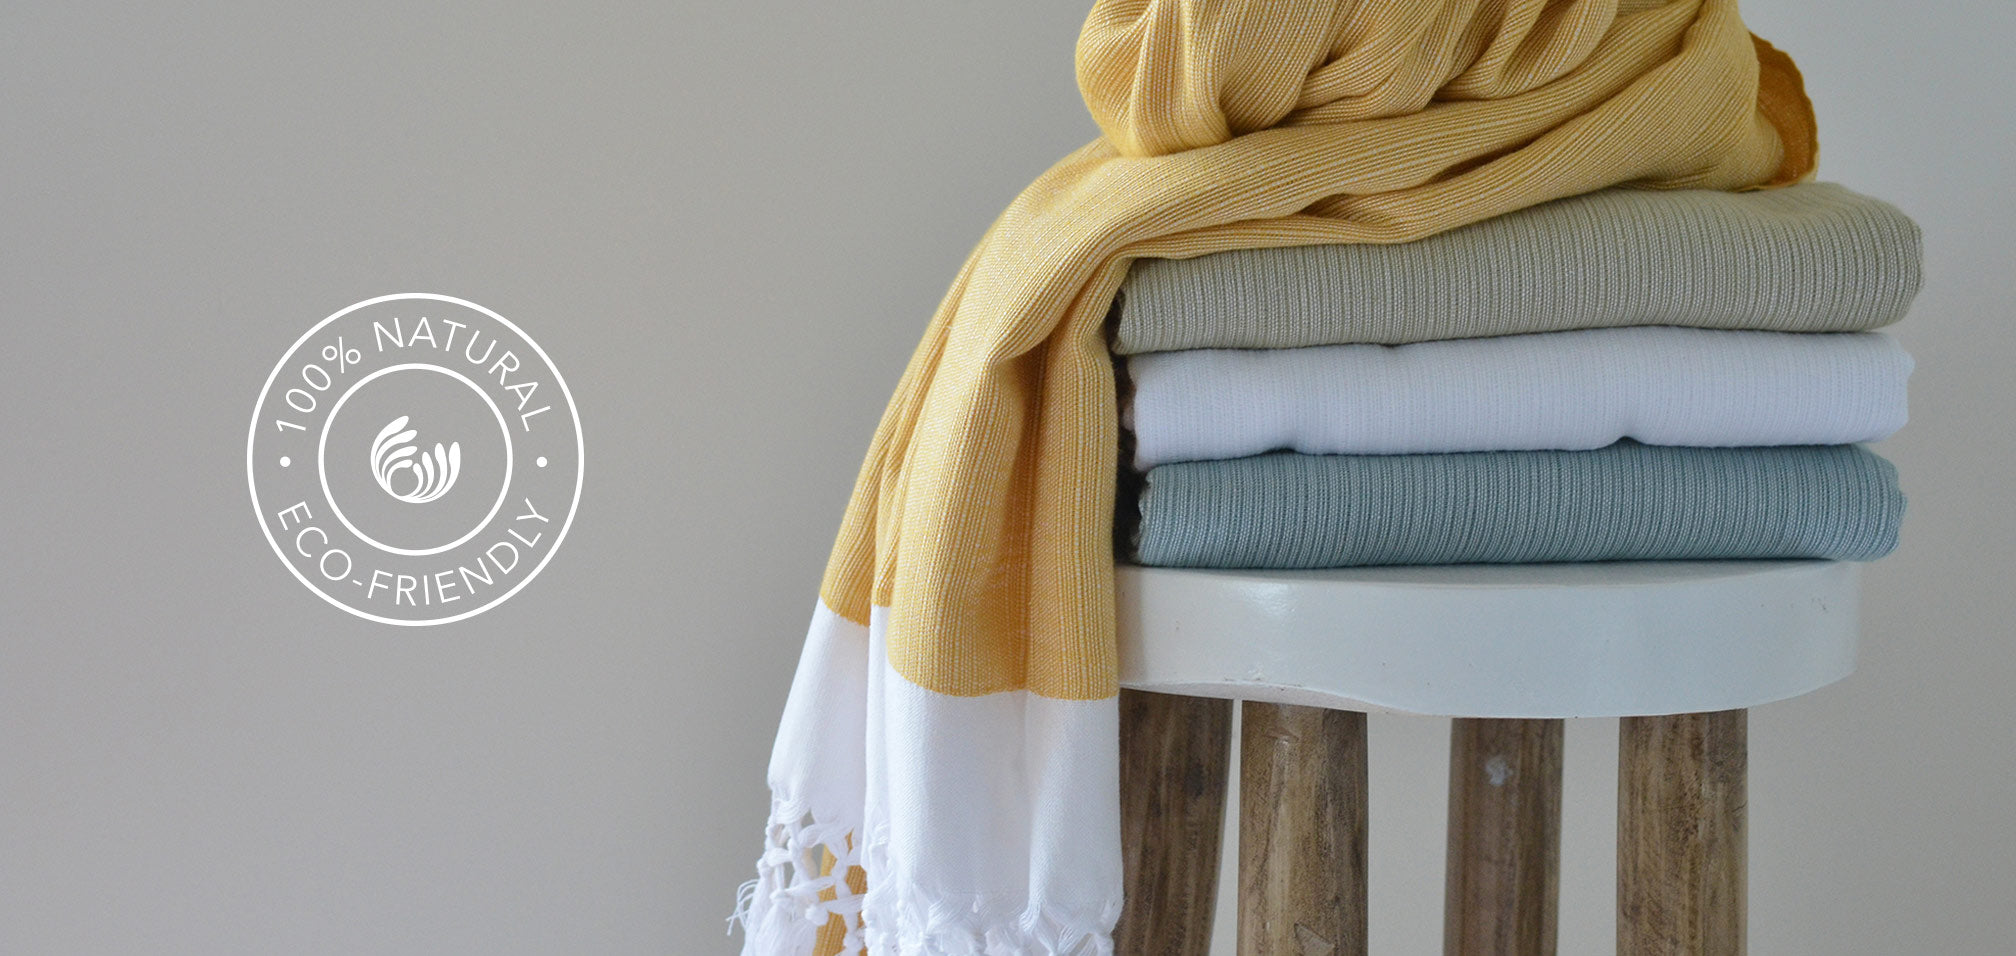 Koza turkish towels-natural fibres